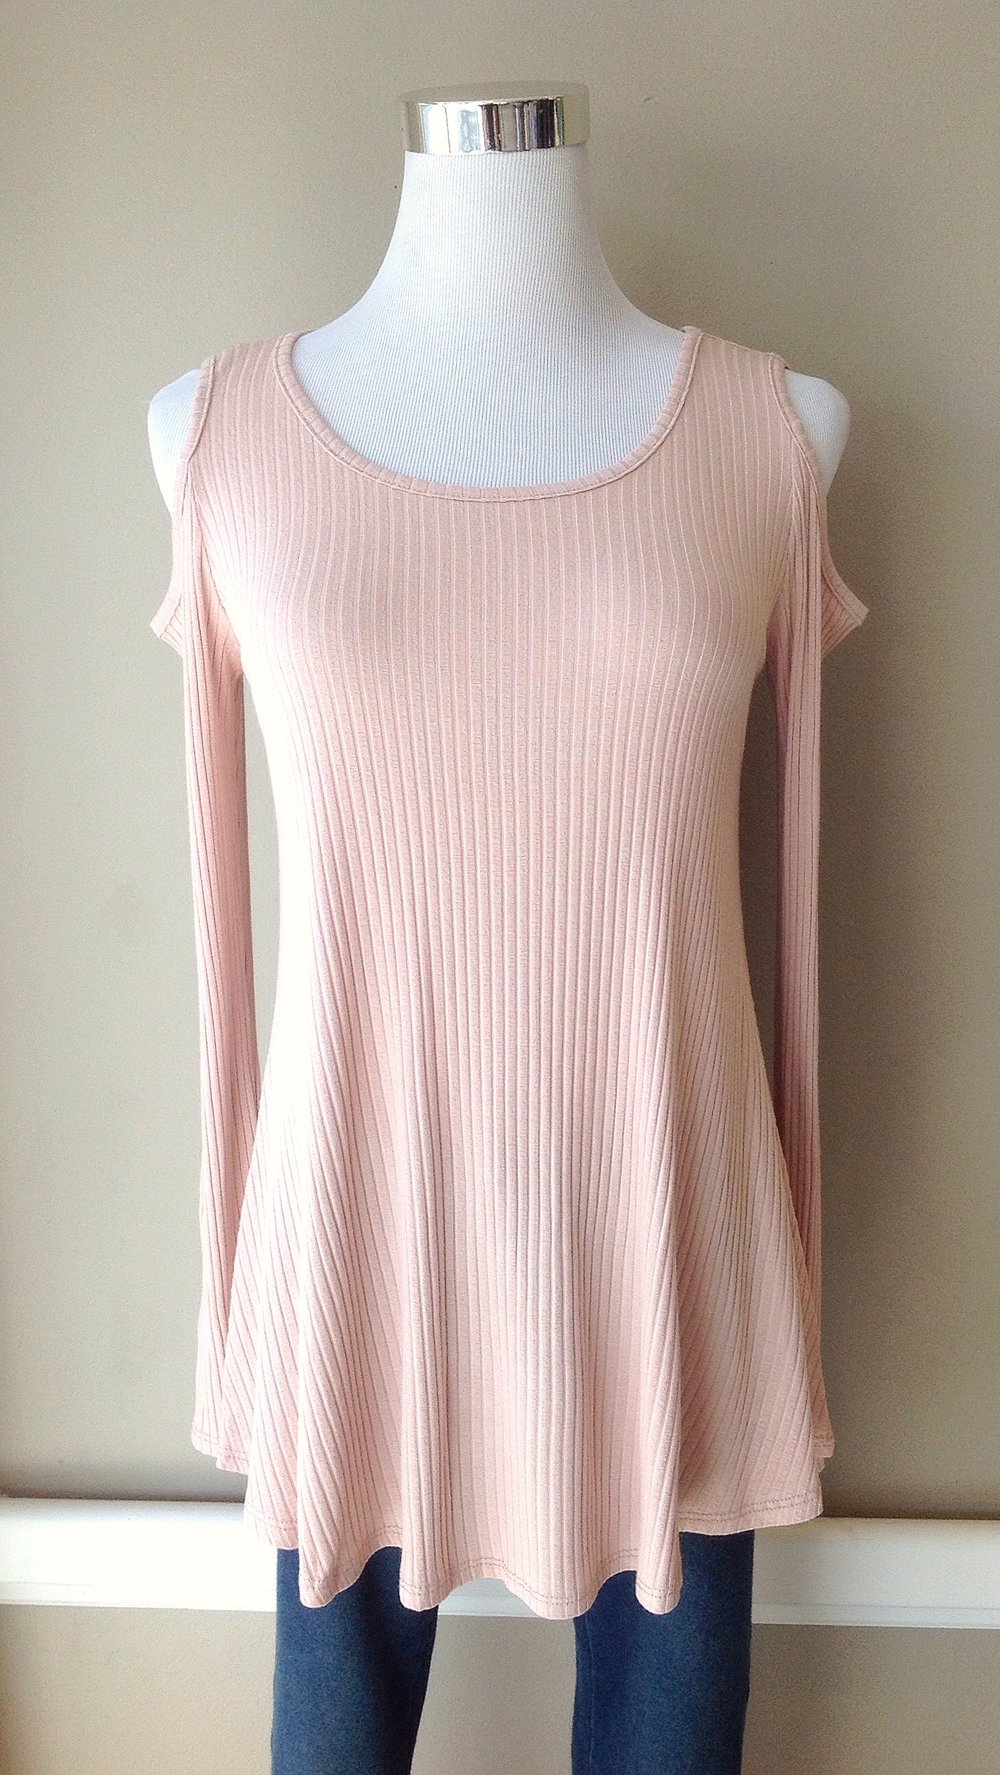 Pink rib knit top with shoulder cutouts, $32